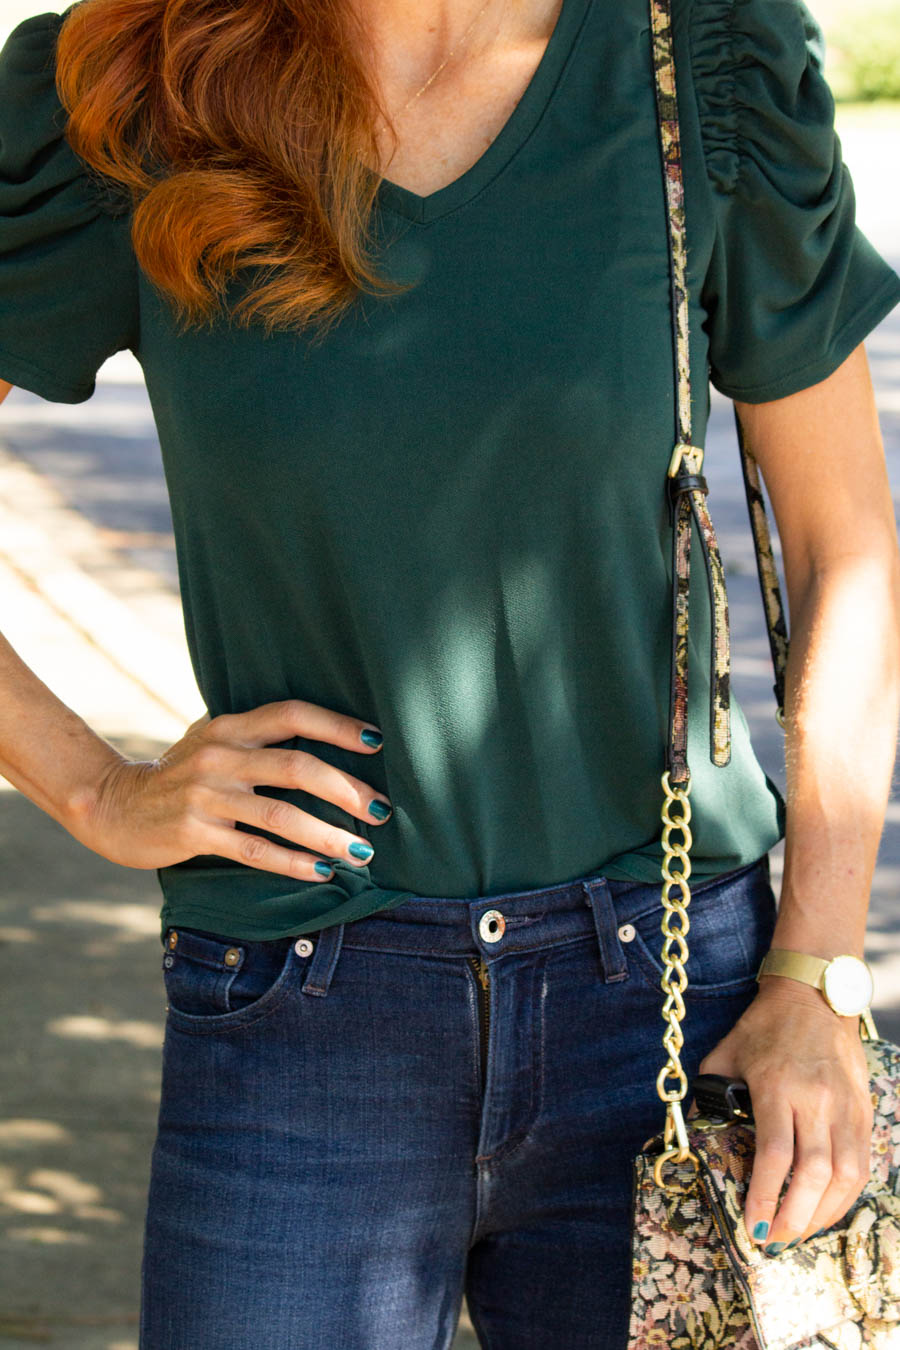 Pine green top and tapestry bag